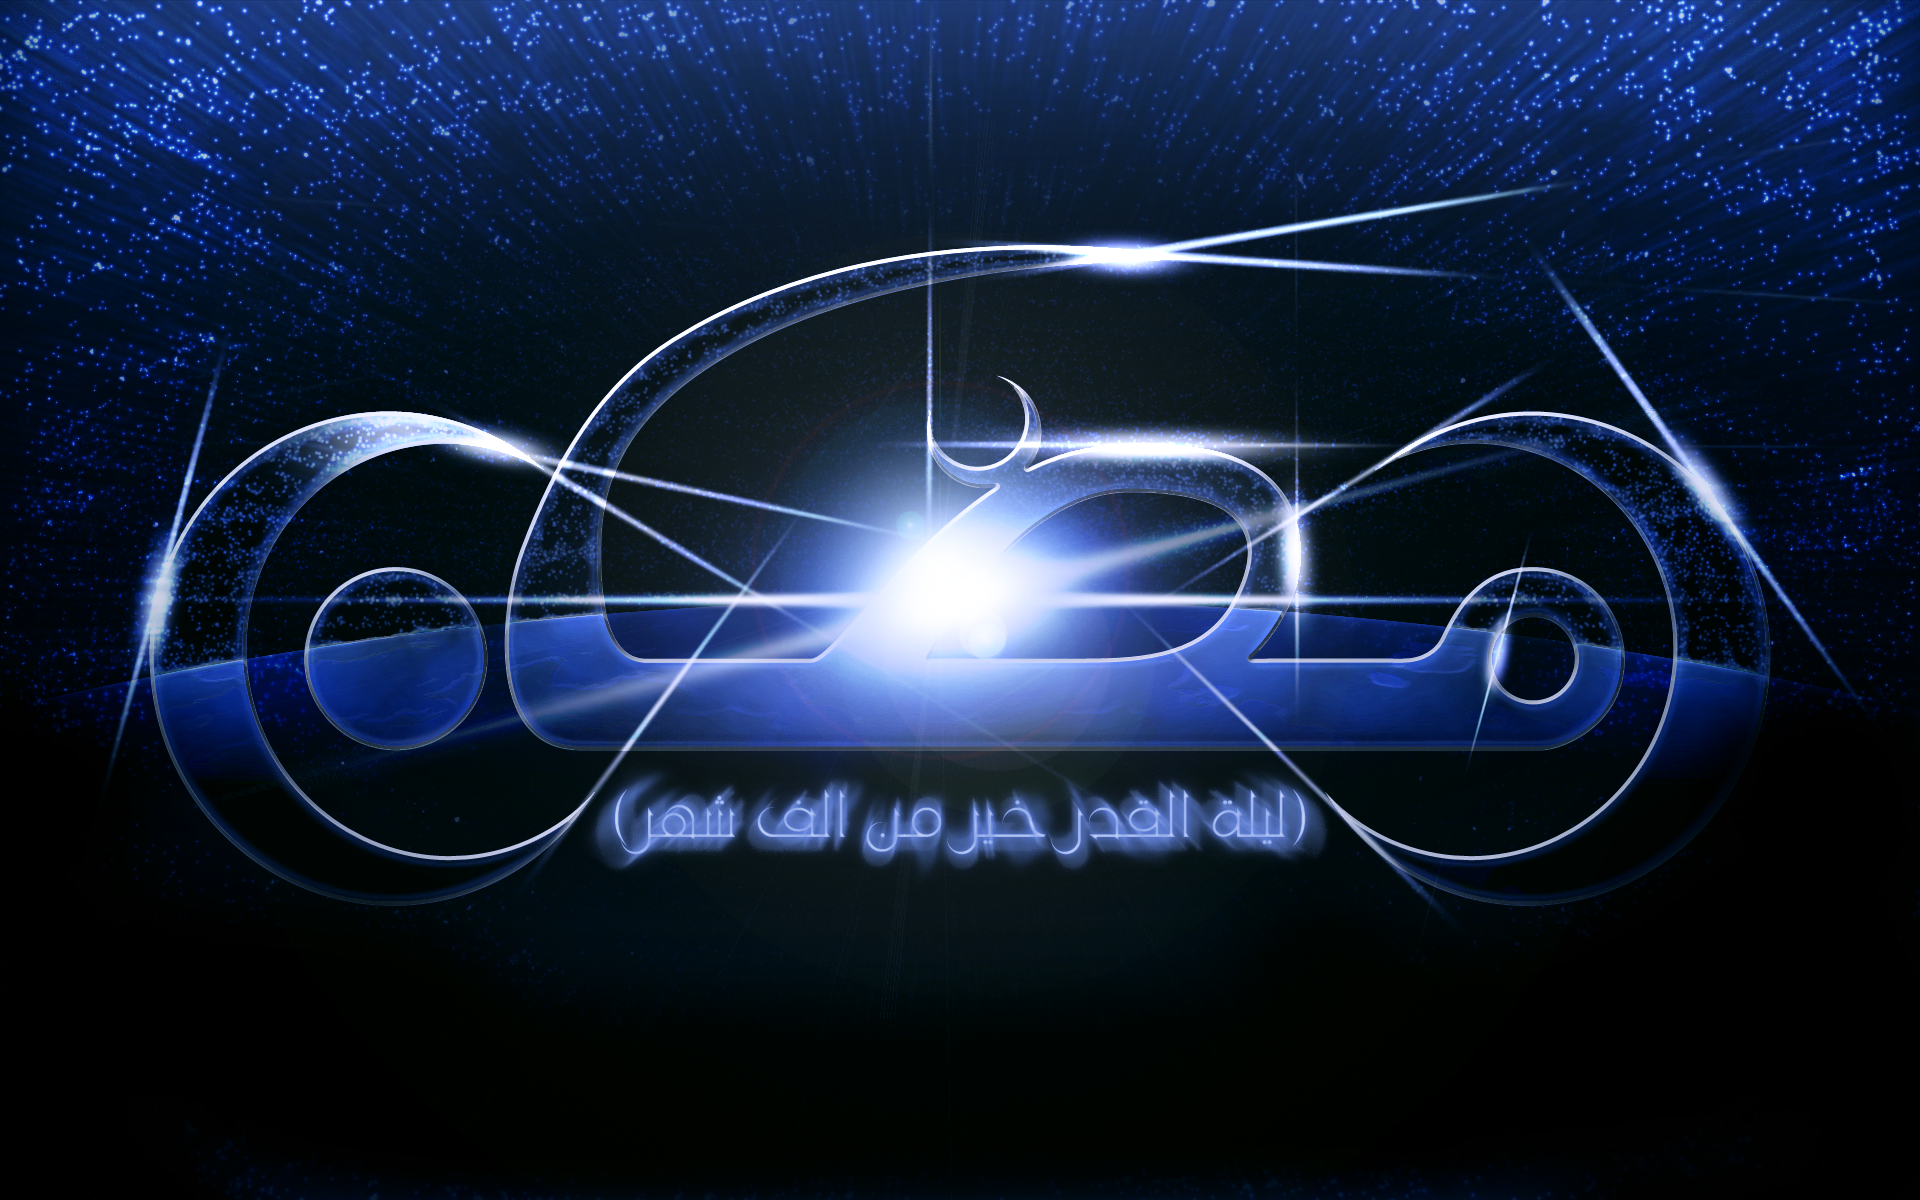 ramadan 2011 wallpaper by marshood d47wnc1 Wallpaper 2011 ramadan